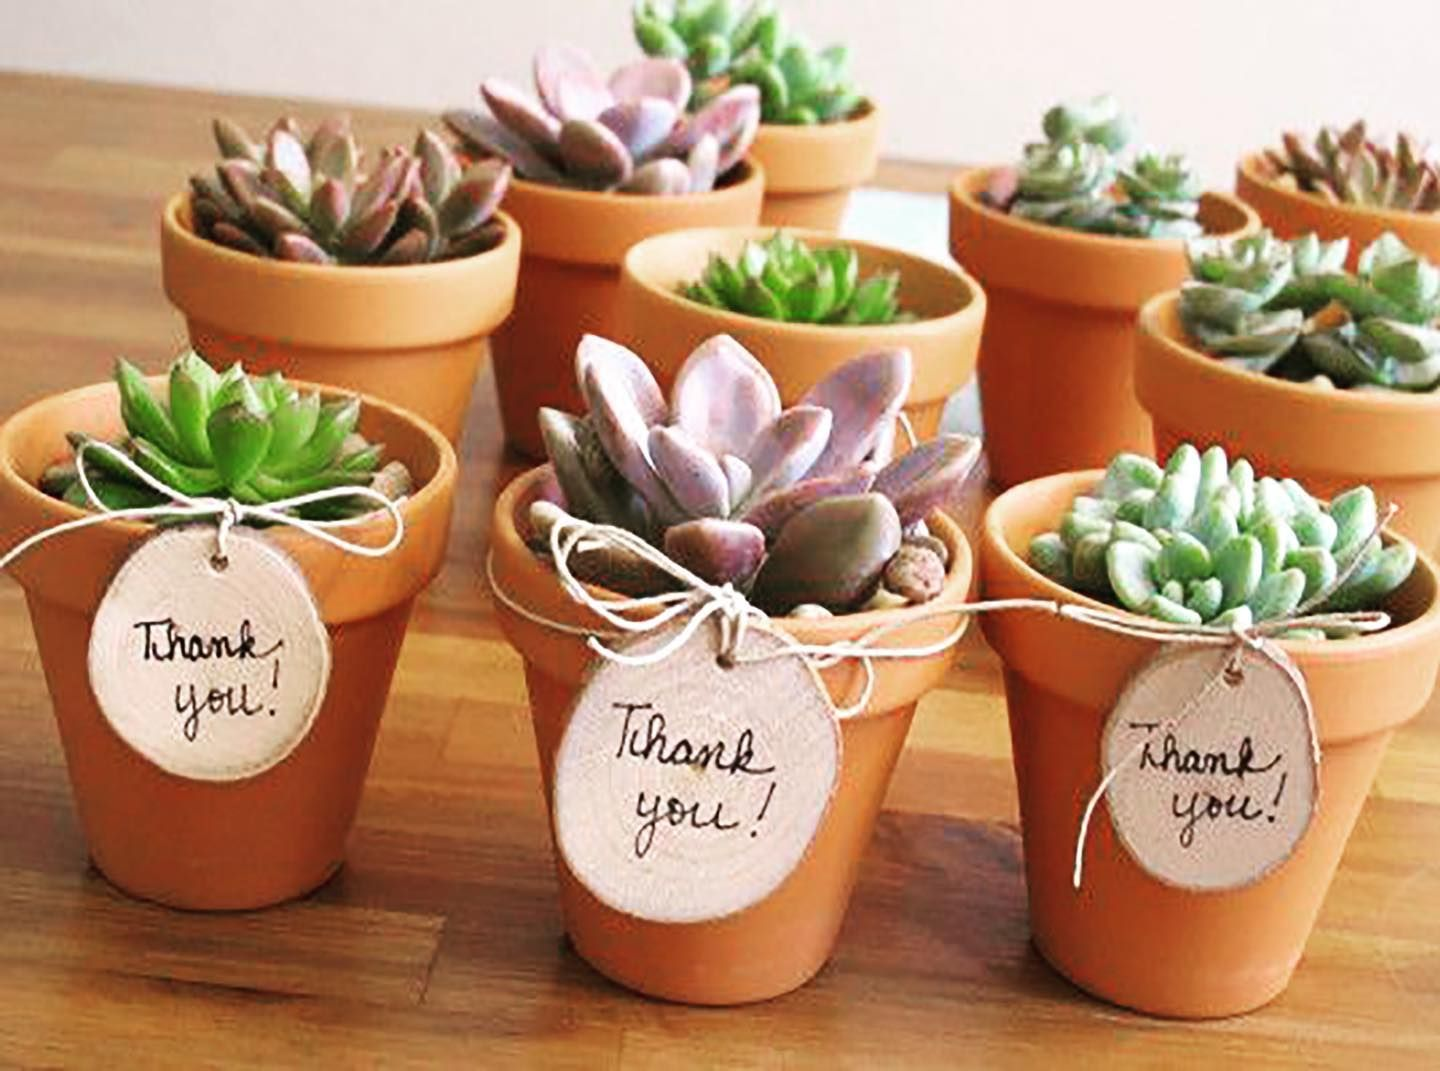 Pin on Succulent Plant Decorations